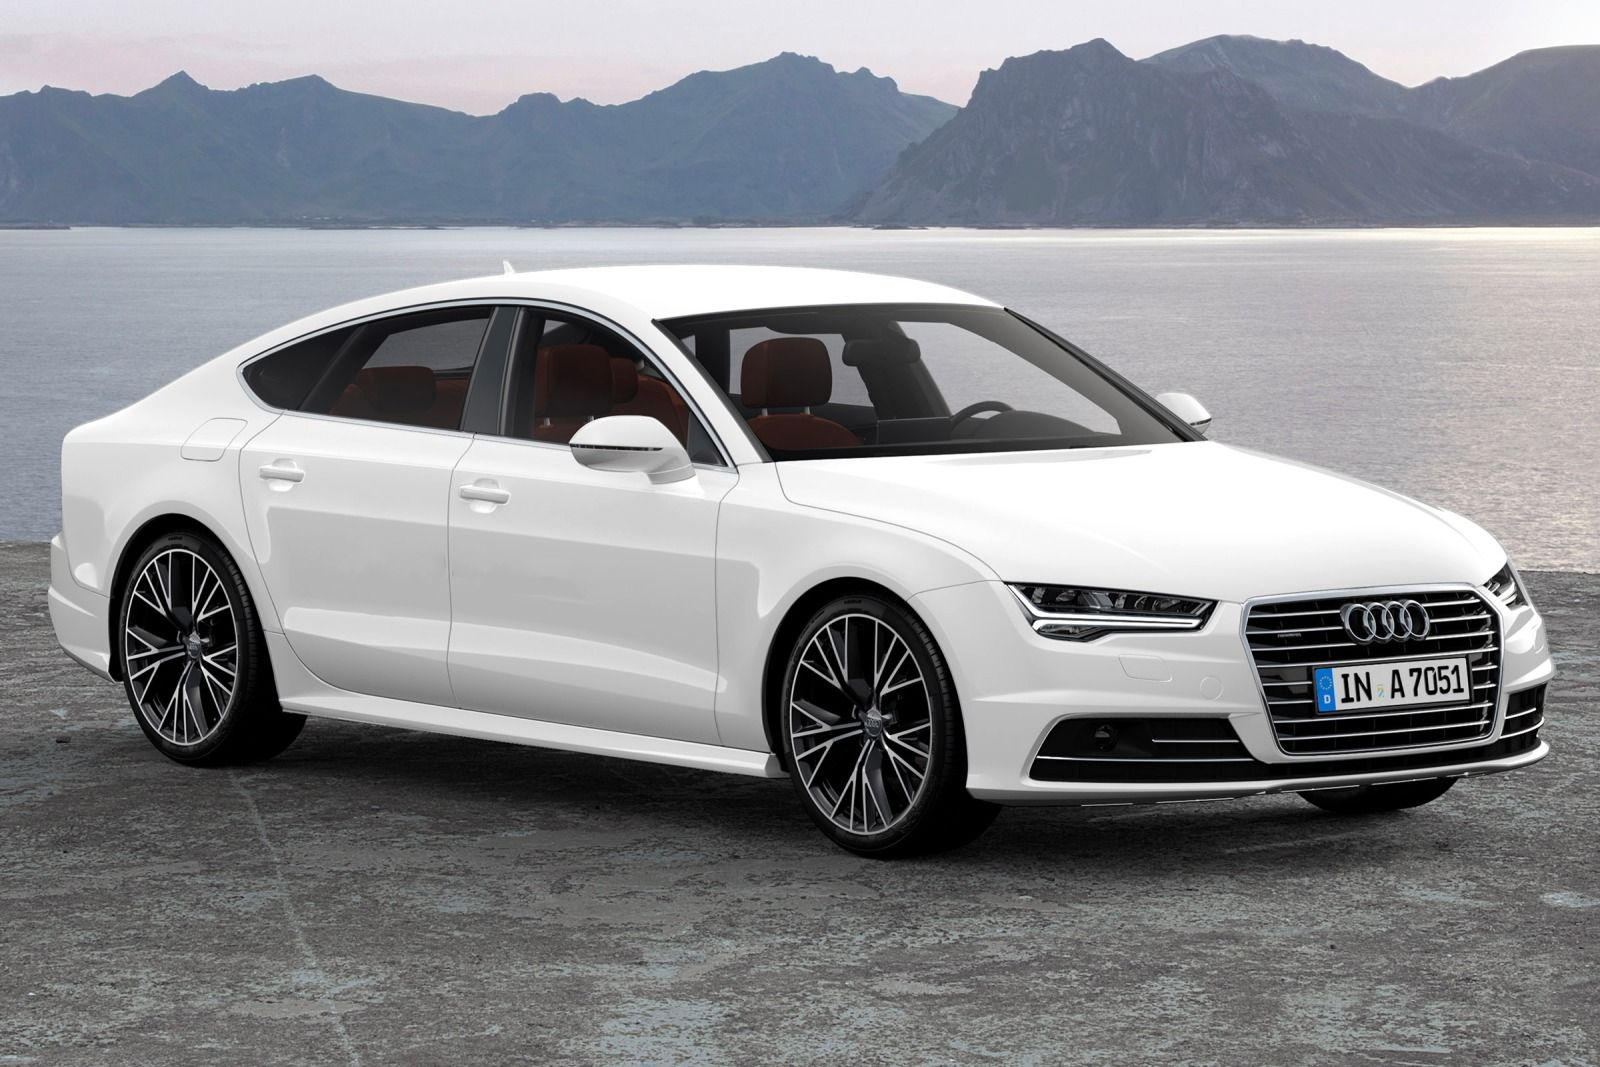 New 2016 Audi A7 Review